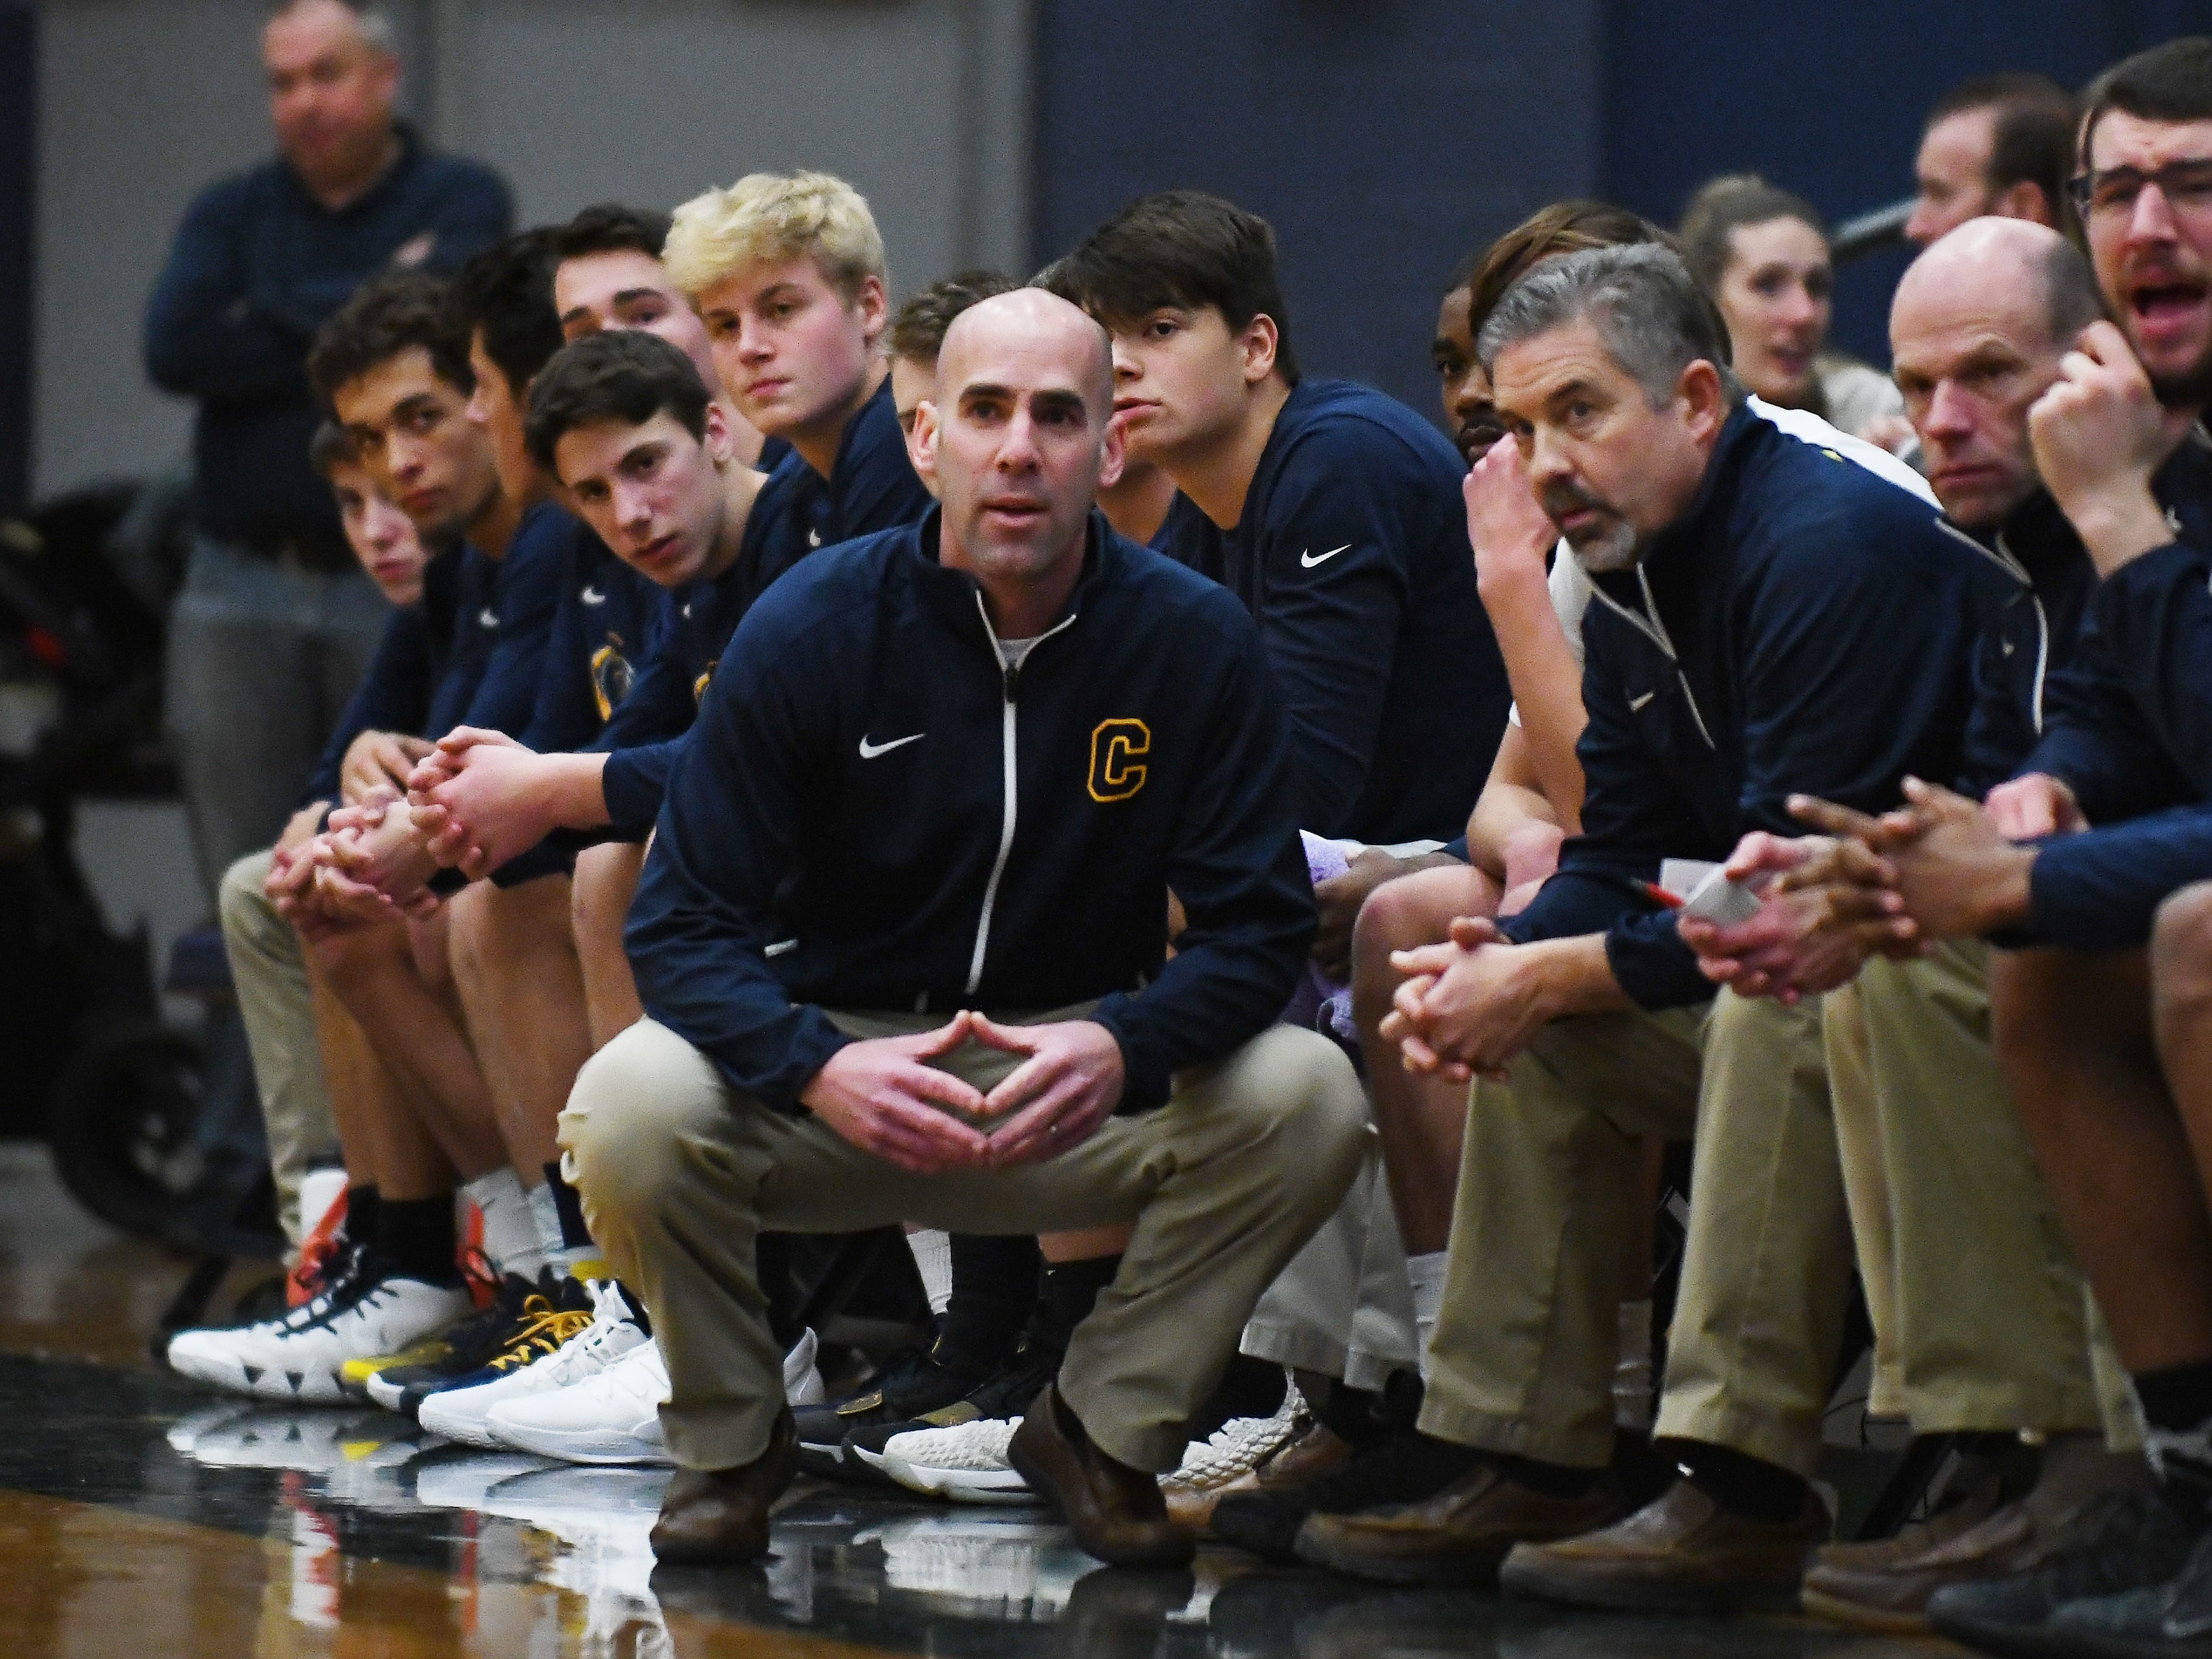 Clarkston's coach Tim Wasilk watches over his team in the first quarter.